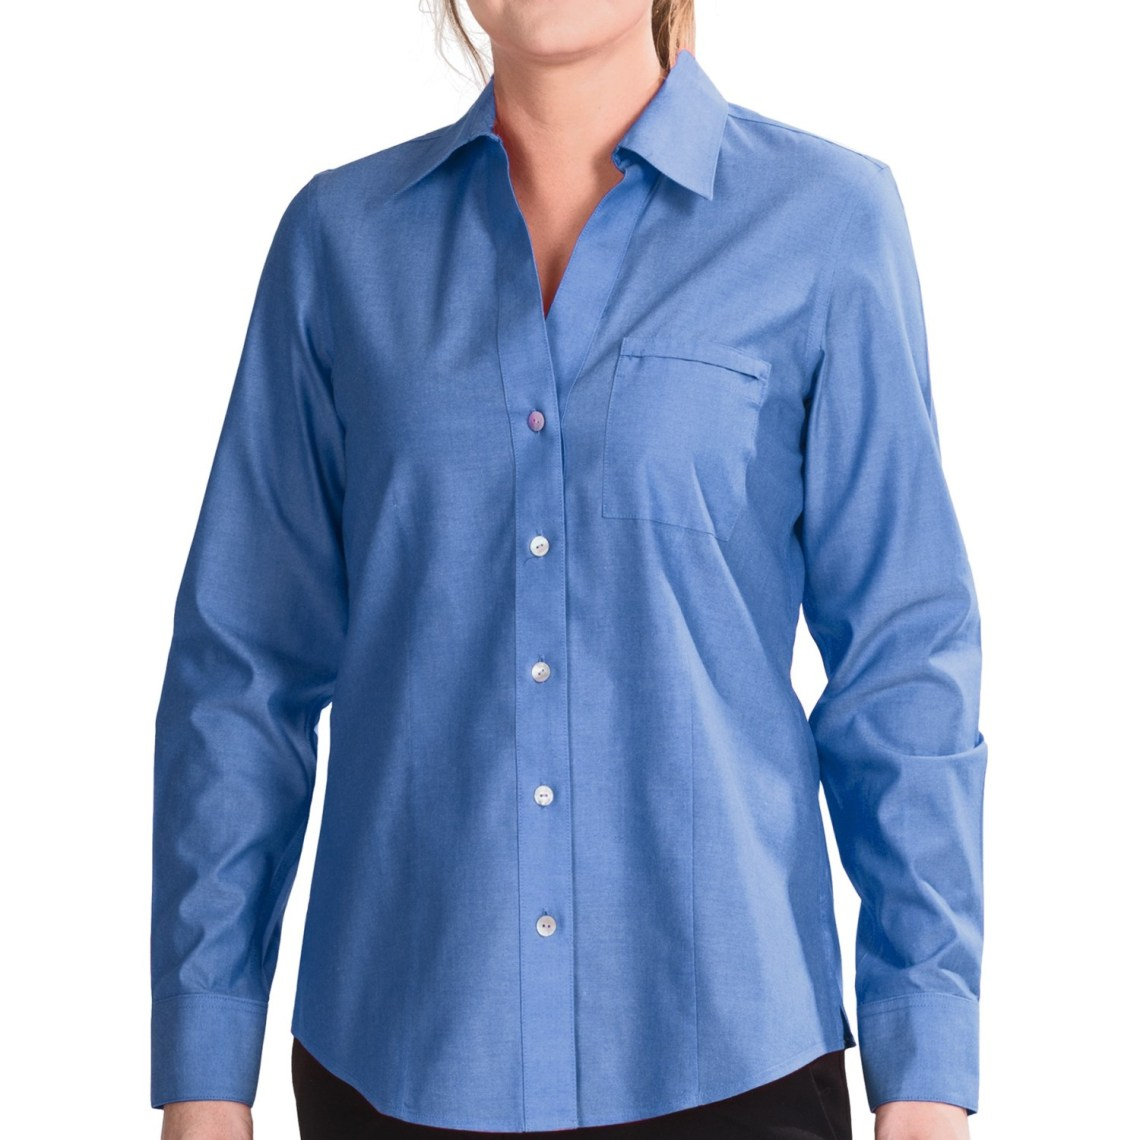 foxcroft johnny collar cotton shirt no iron long sleeve for women in china blue~p~7028n 03~1500.2 Foxcroft Blouses No Iron